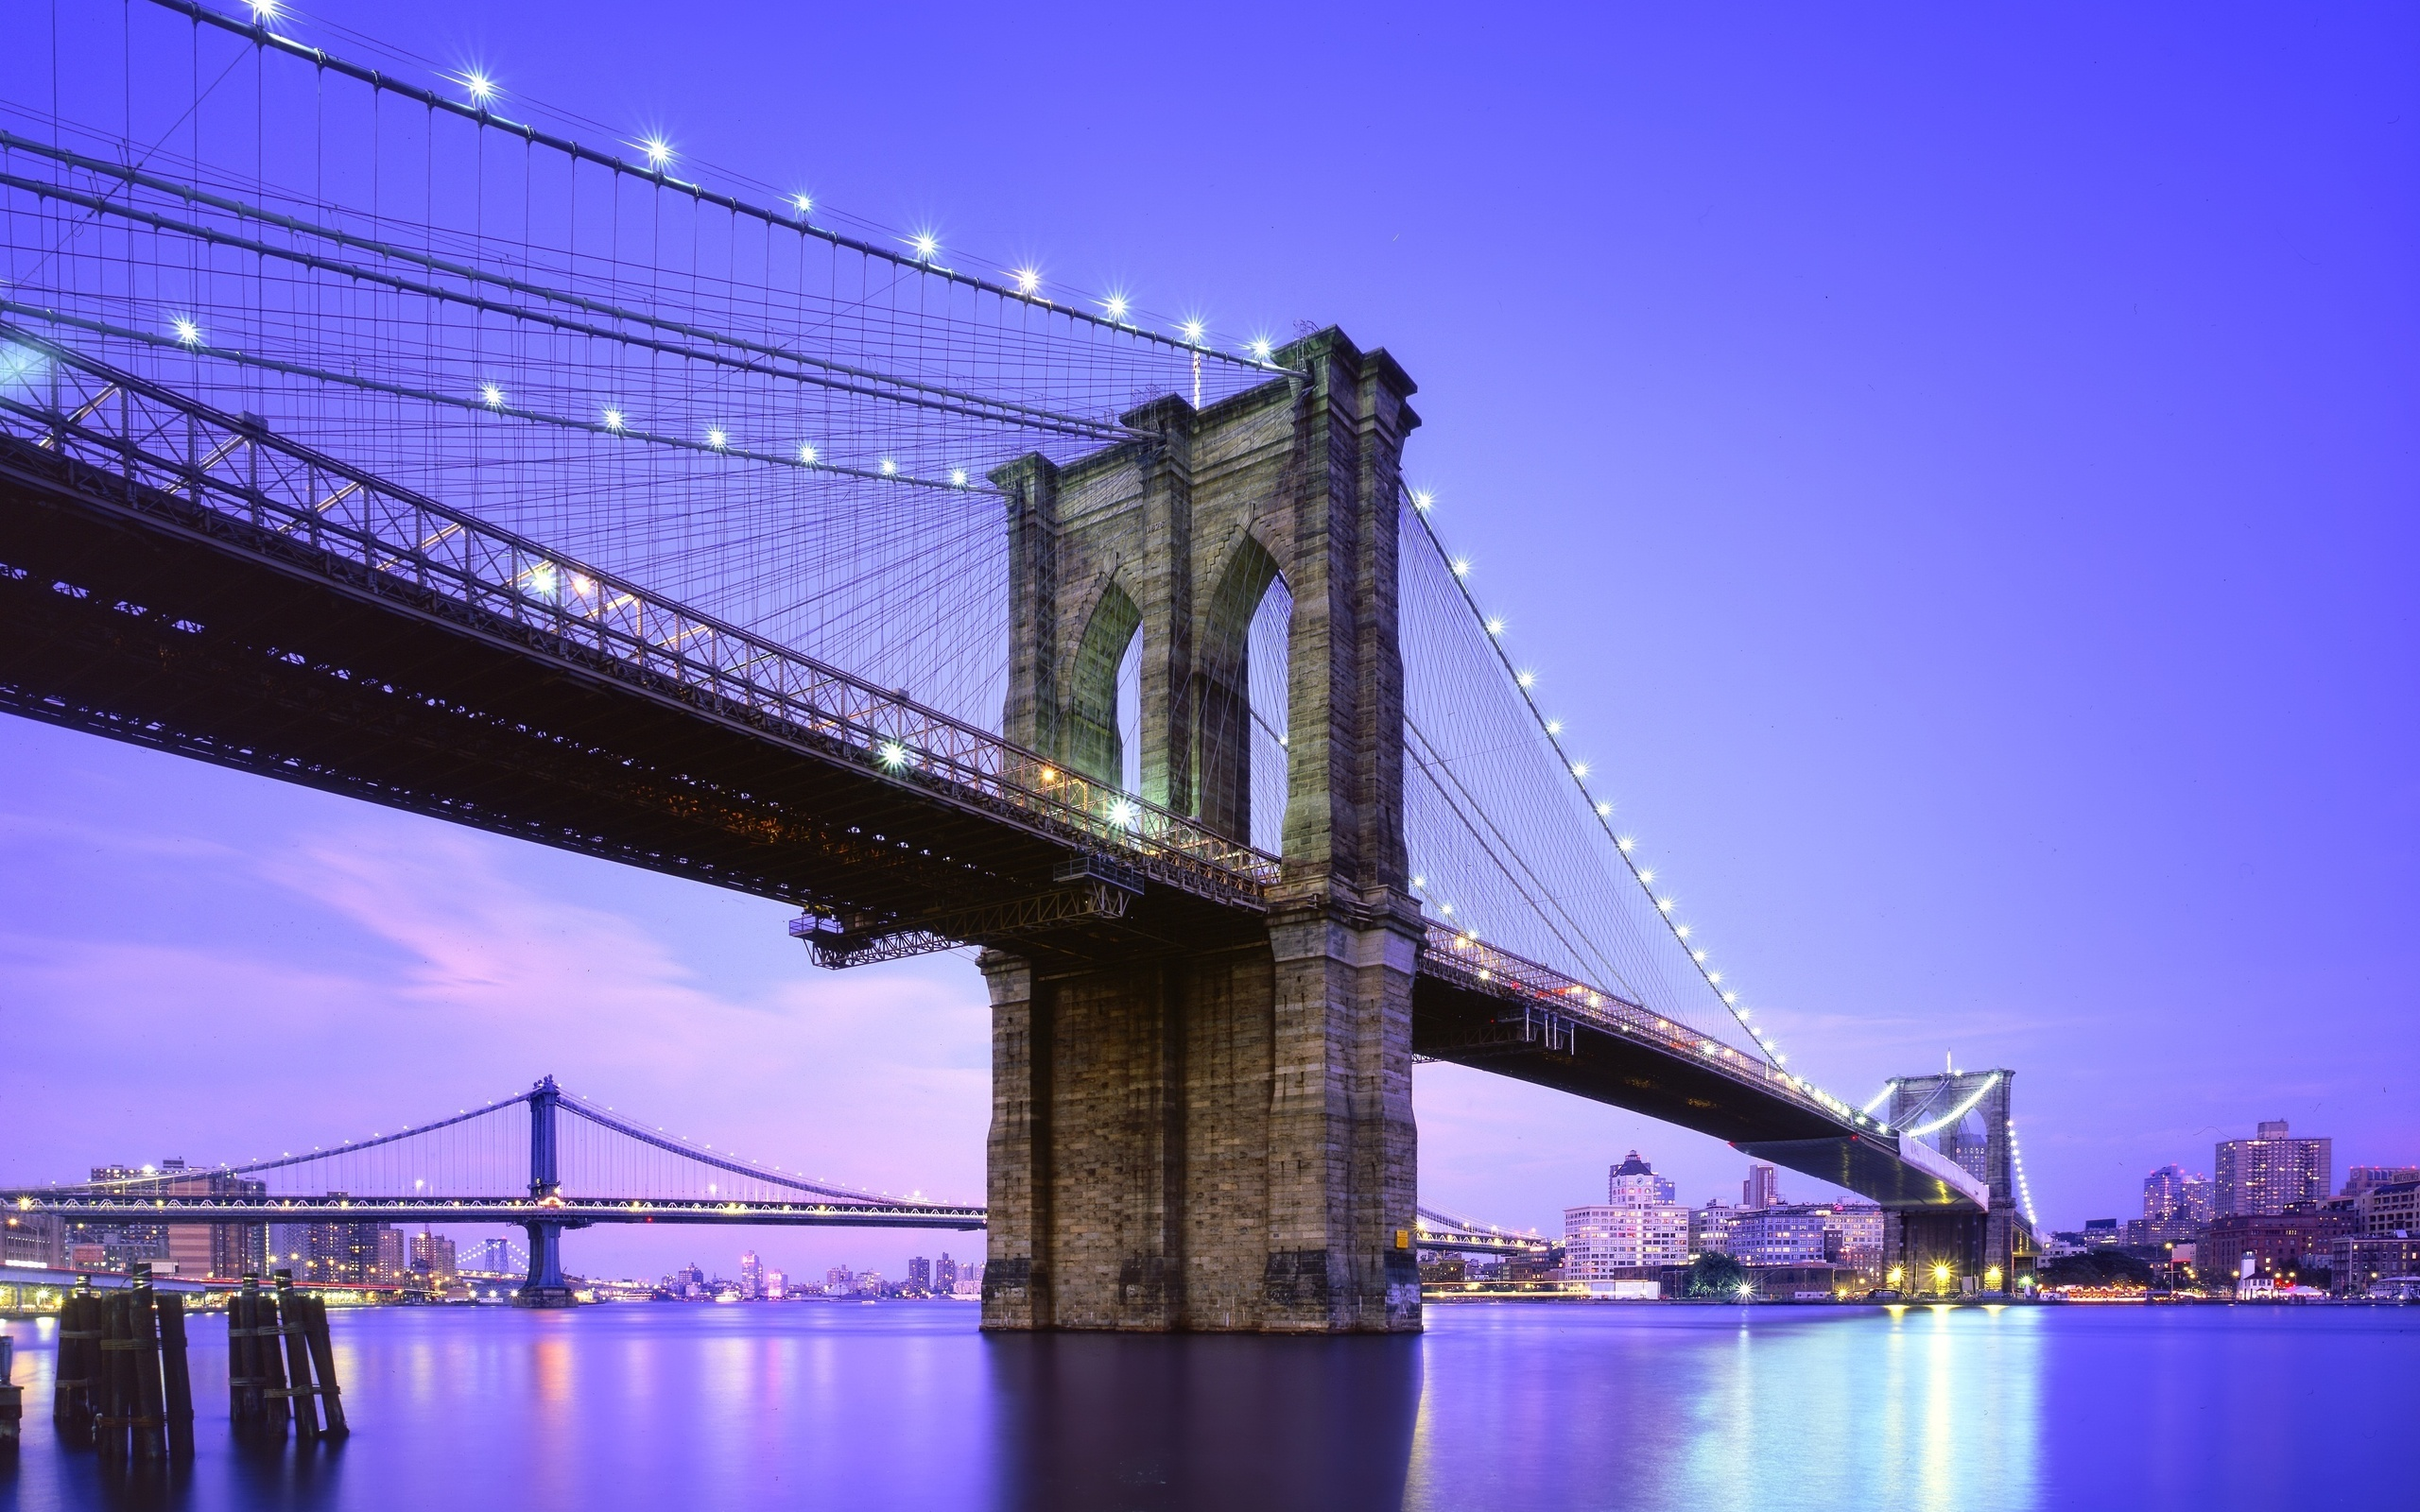 Brooklyn Bridge Wallpapers - 2560x1600 - 1256354